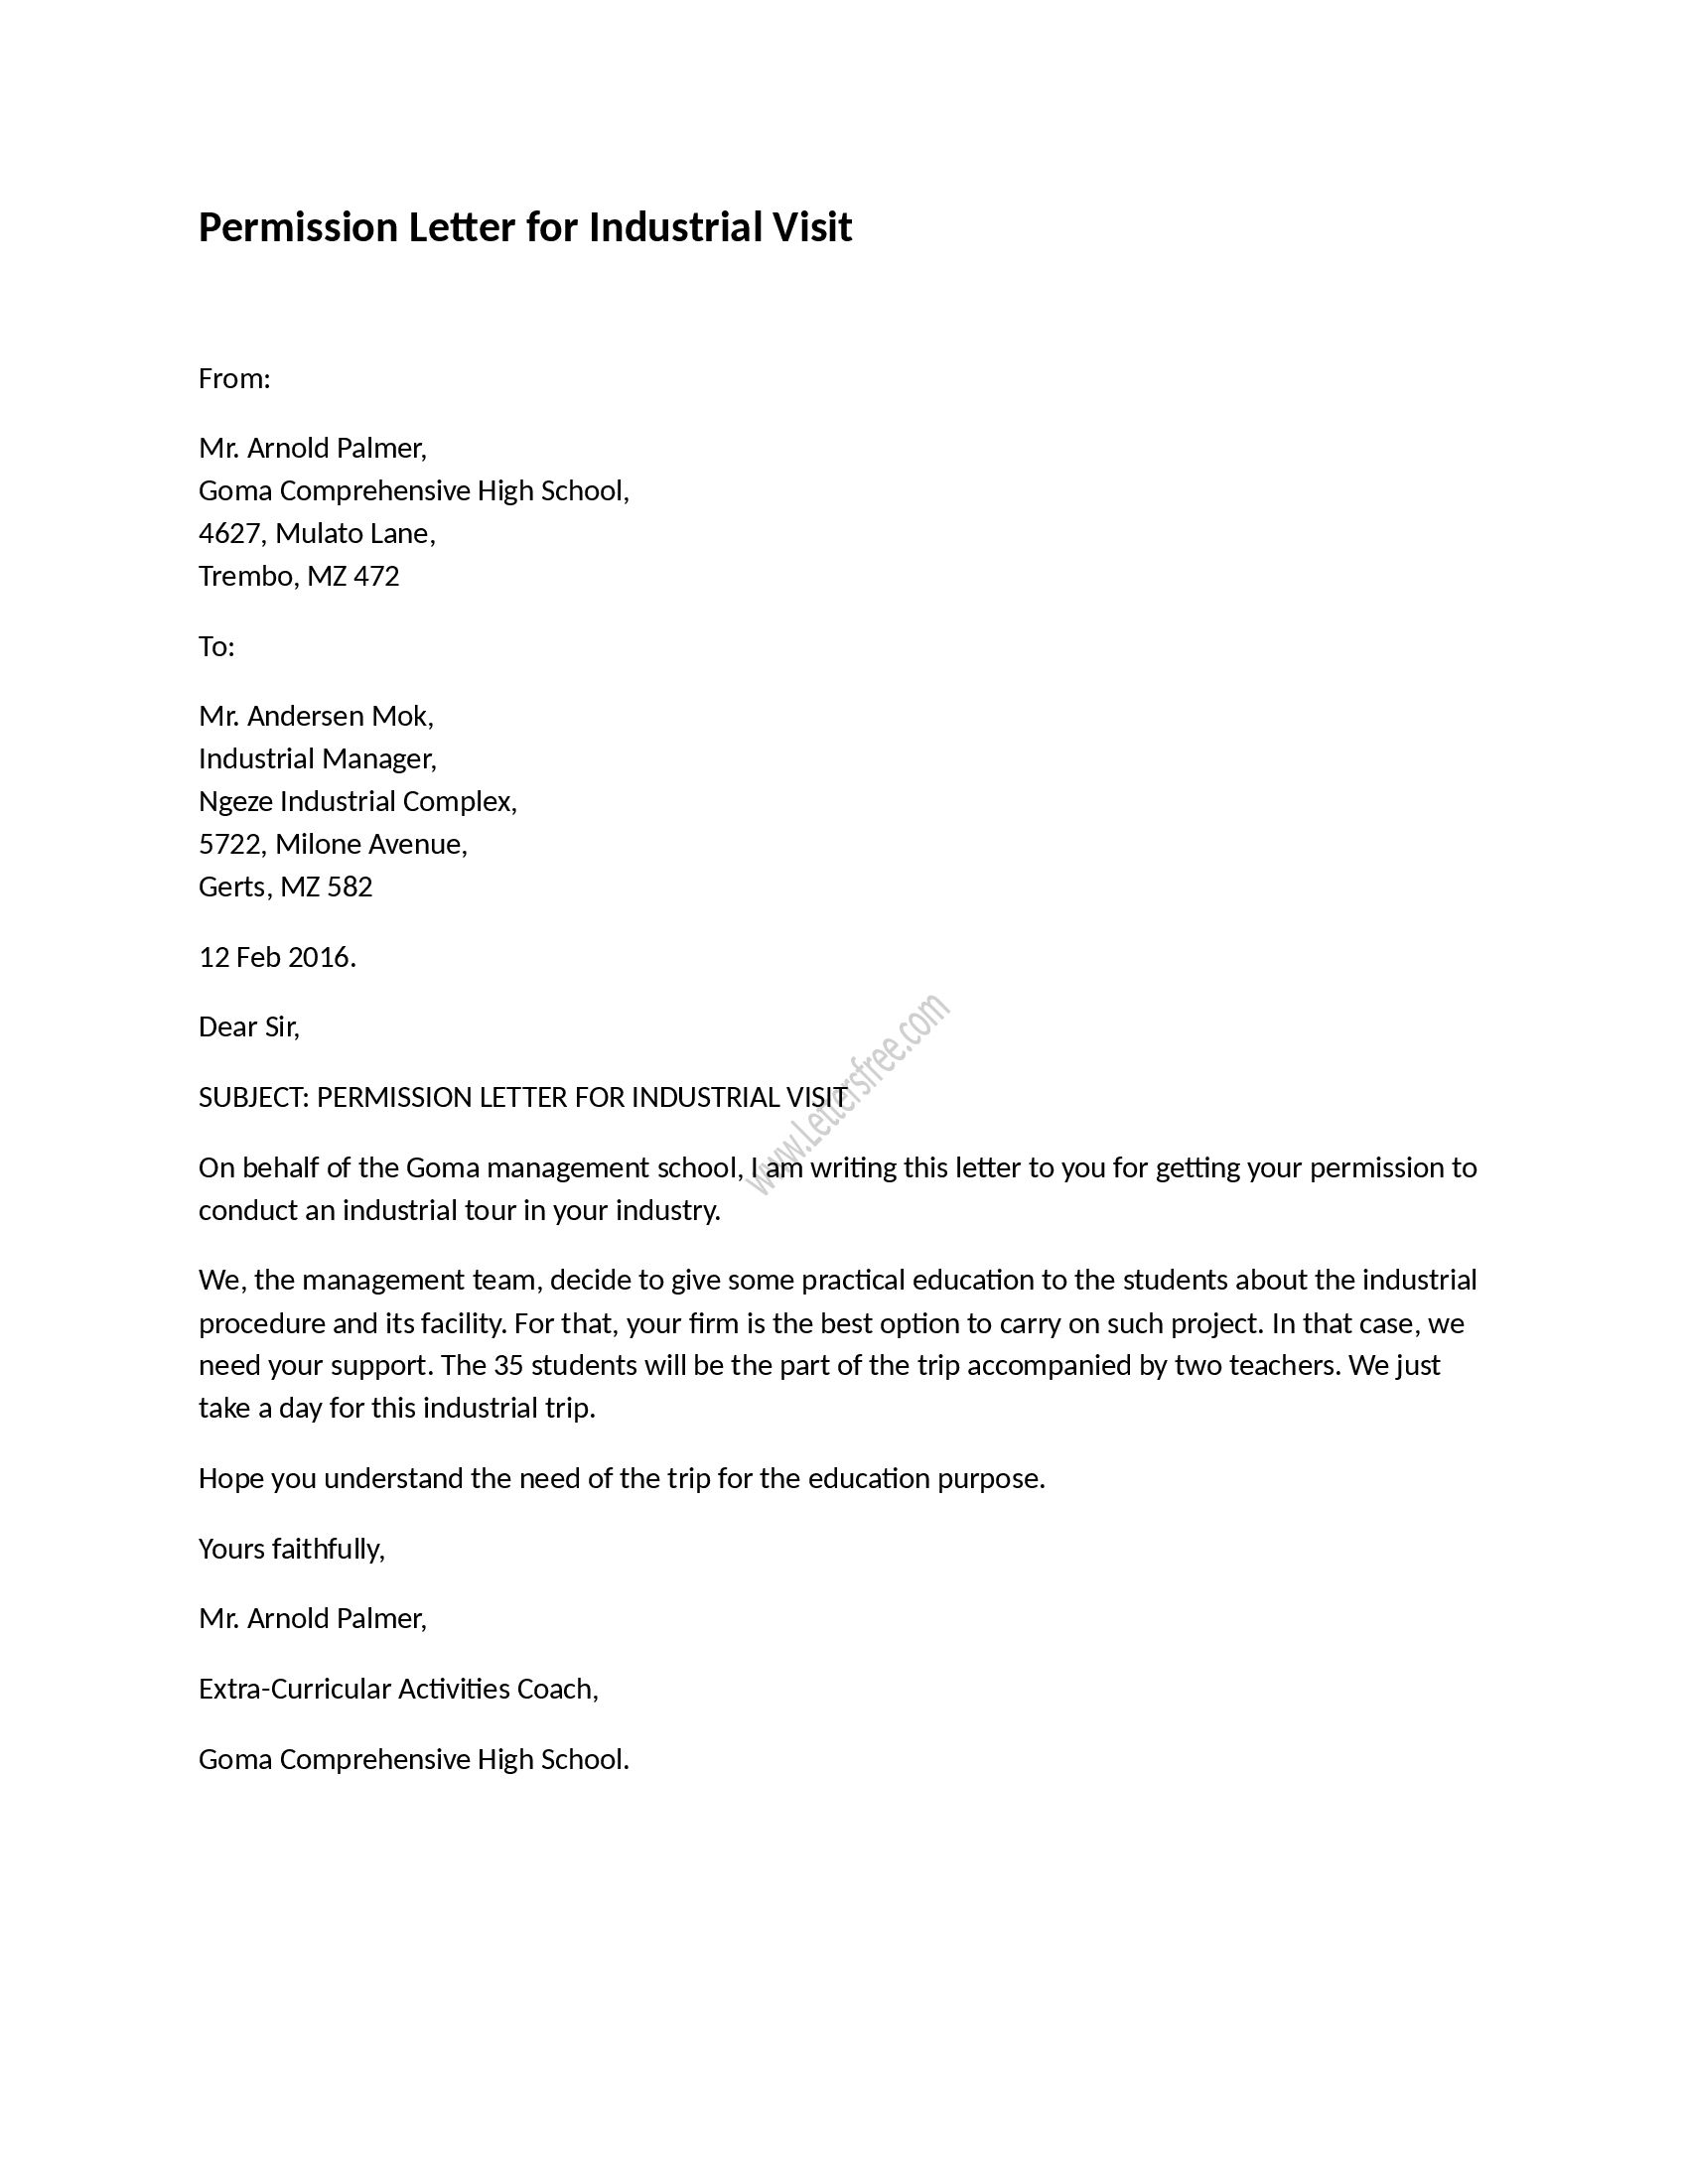 Permission to Travel Letter Template - Permission Letter for Industrial Visit Pinterest